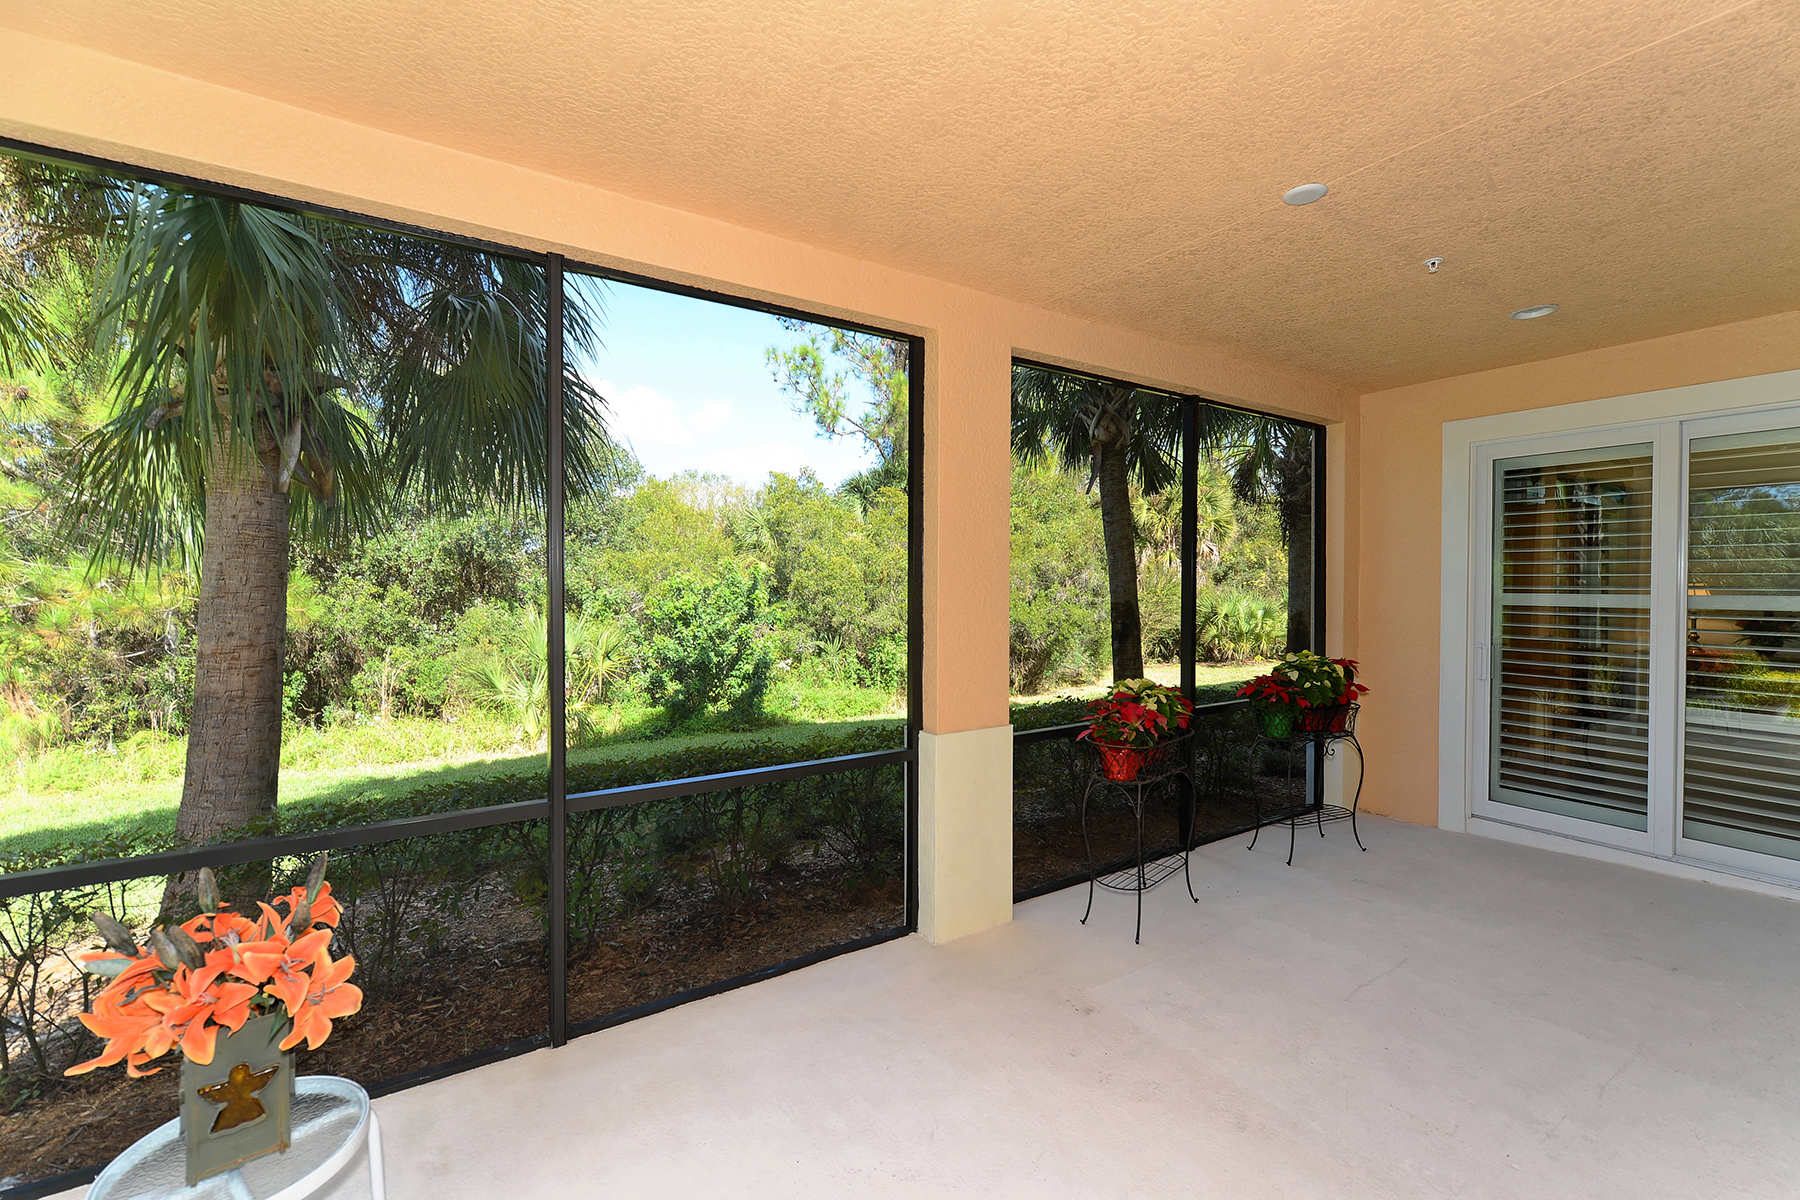 Additional photo for property listing at VENETIAN GOLF & RIVER CLUB 174  Bella Vista Terr 21A,  North Venice, Florida 34275 United States